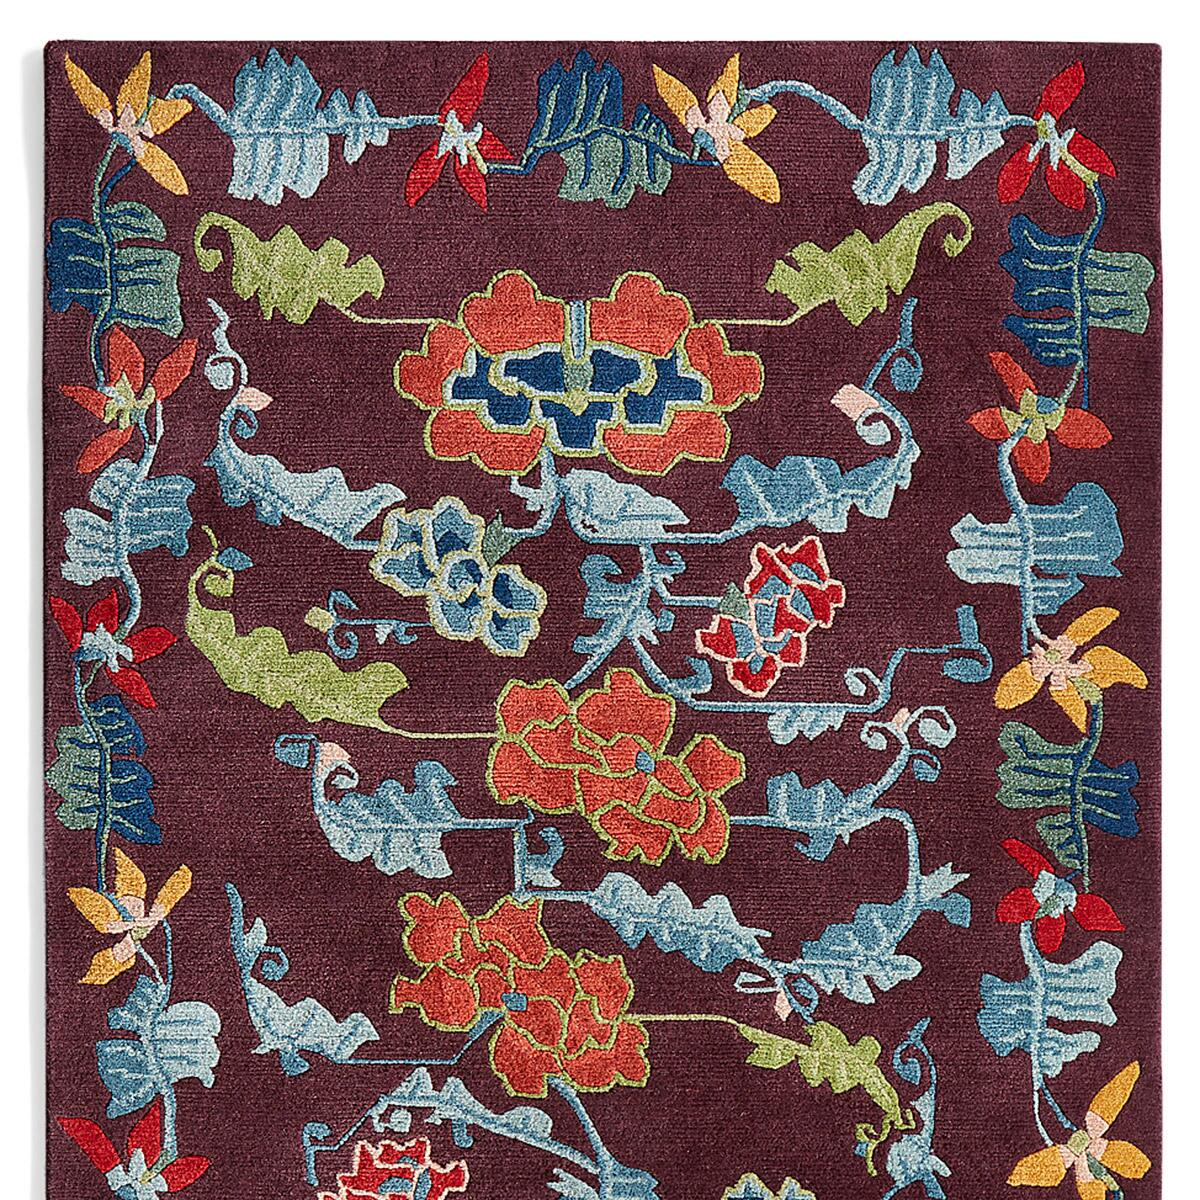 ANNAPURNA KNOTTED RUG - LG: View 1